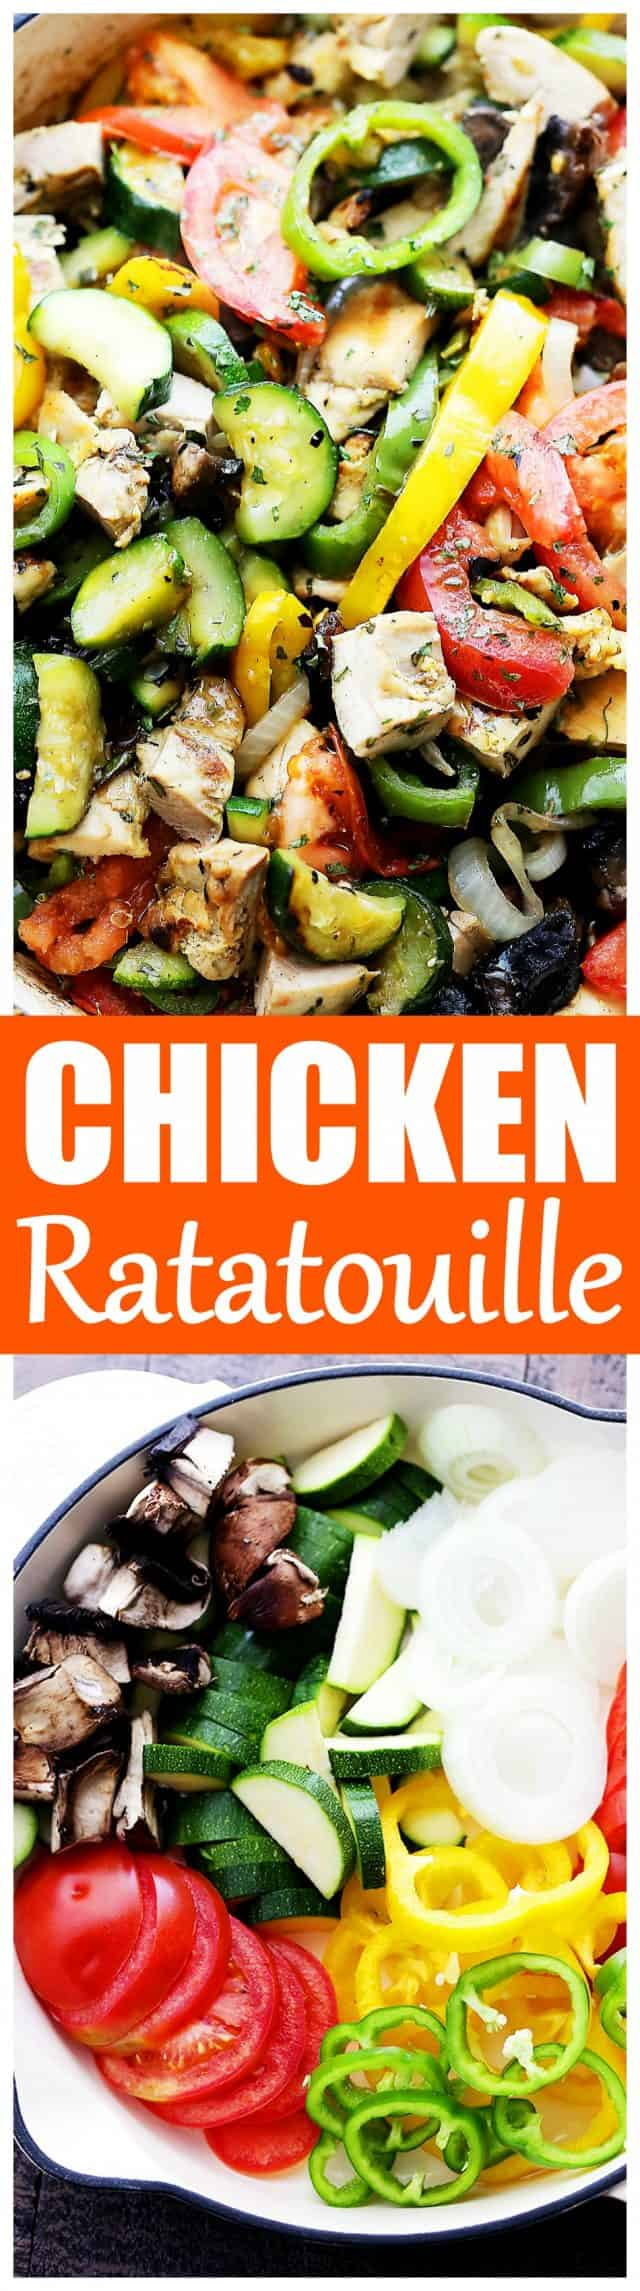 Chicken Ratatouille Recipe - A quick and delicious 30-minute, one-skillet meal packed with fresh garden vegetables, herbs, and chicken.